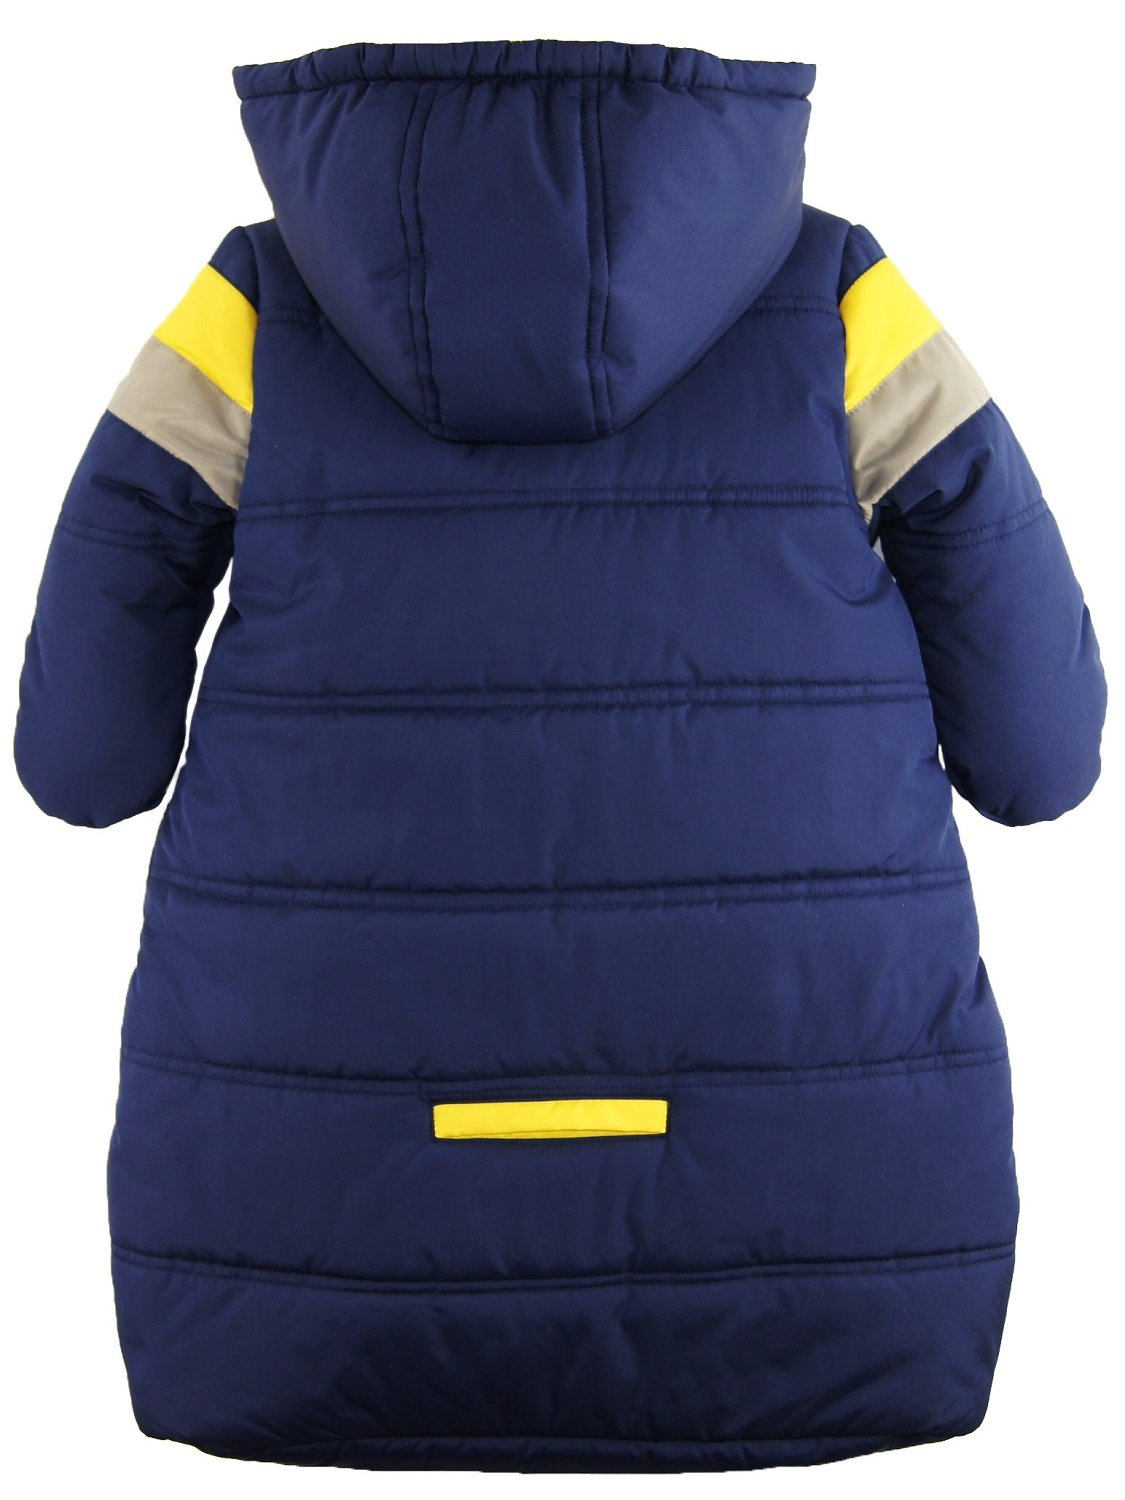 iXtreme Baby Boys Snowsuit Colorblock Stripes Puffer Carbag, Navy, 6-9 Months by iXtreme (Image #3)